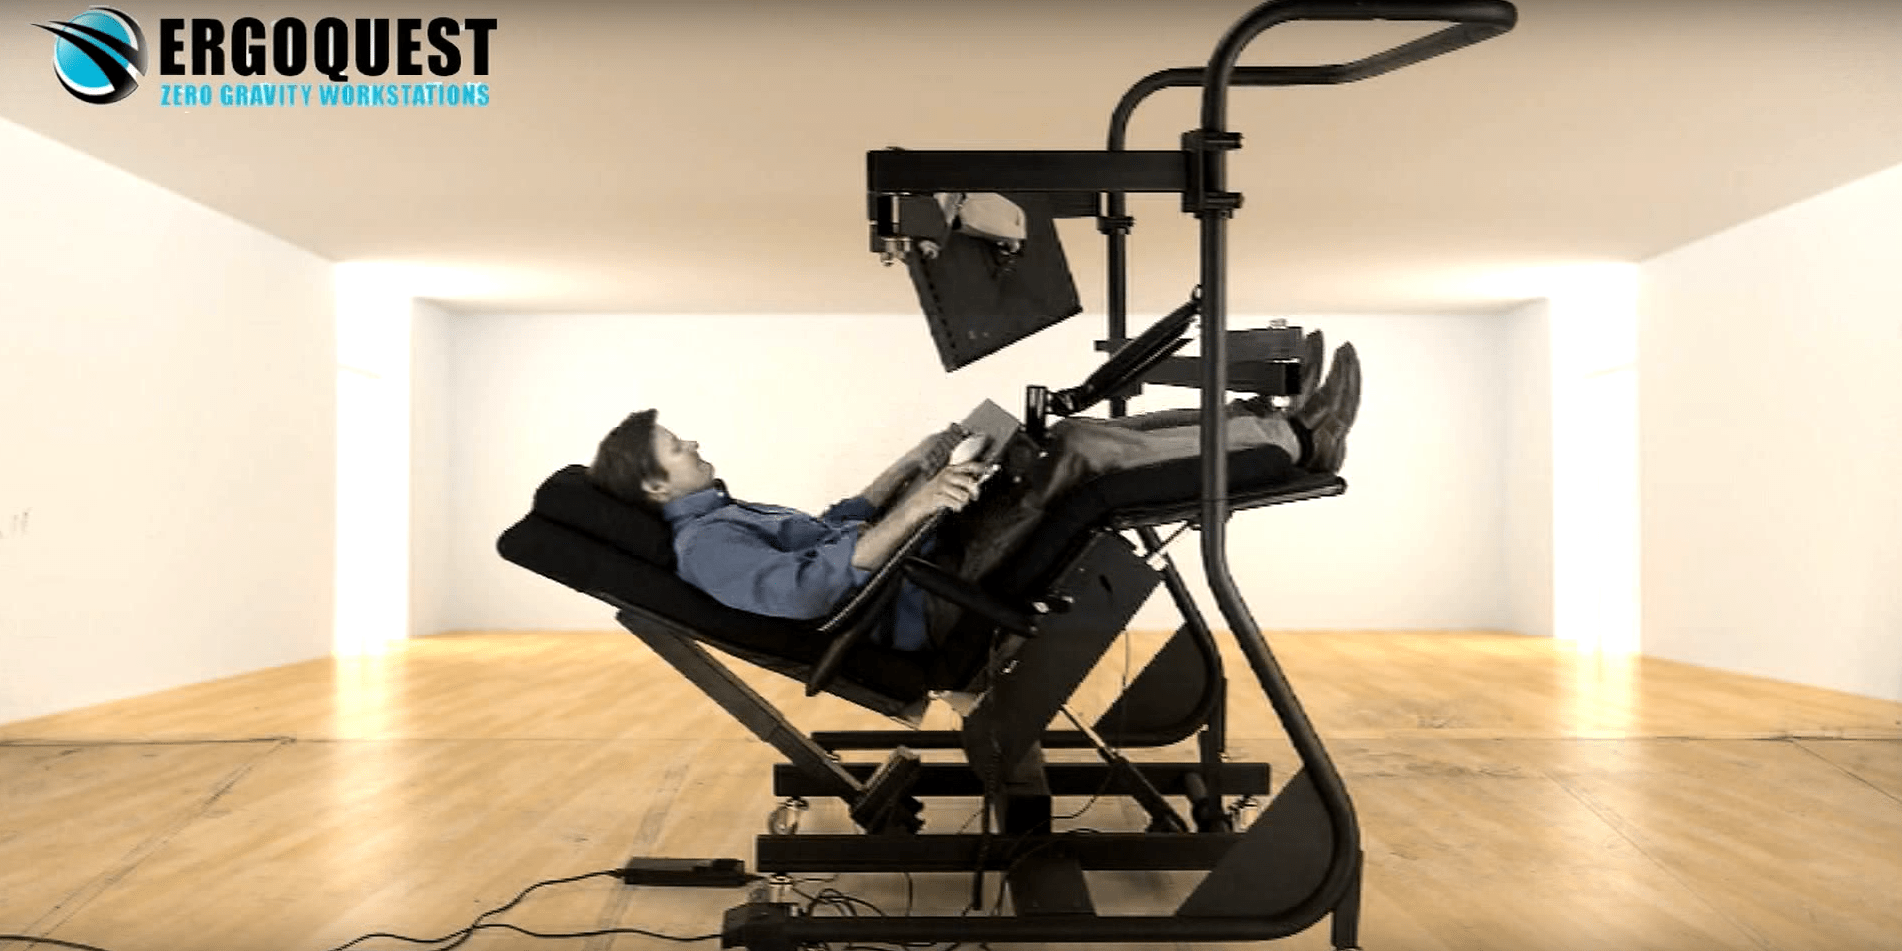 most comfortable desk chairs modern pedicure we tested out the ergoquest zero gravity chair - business insider